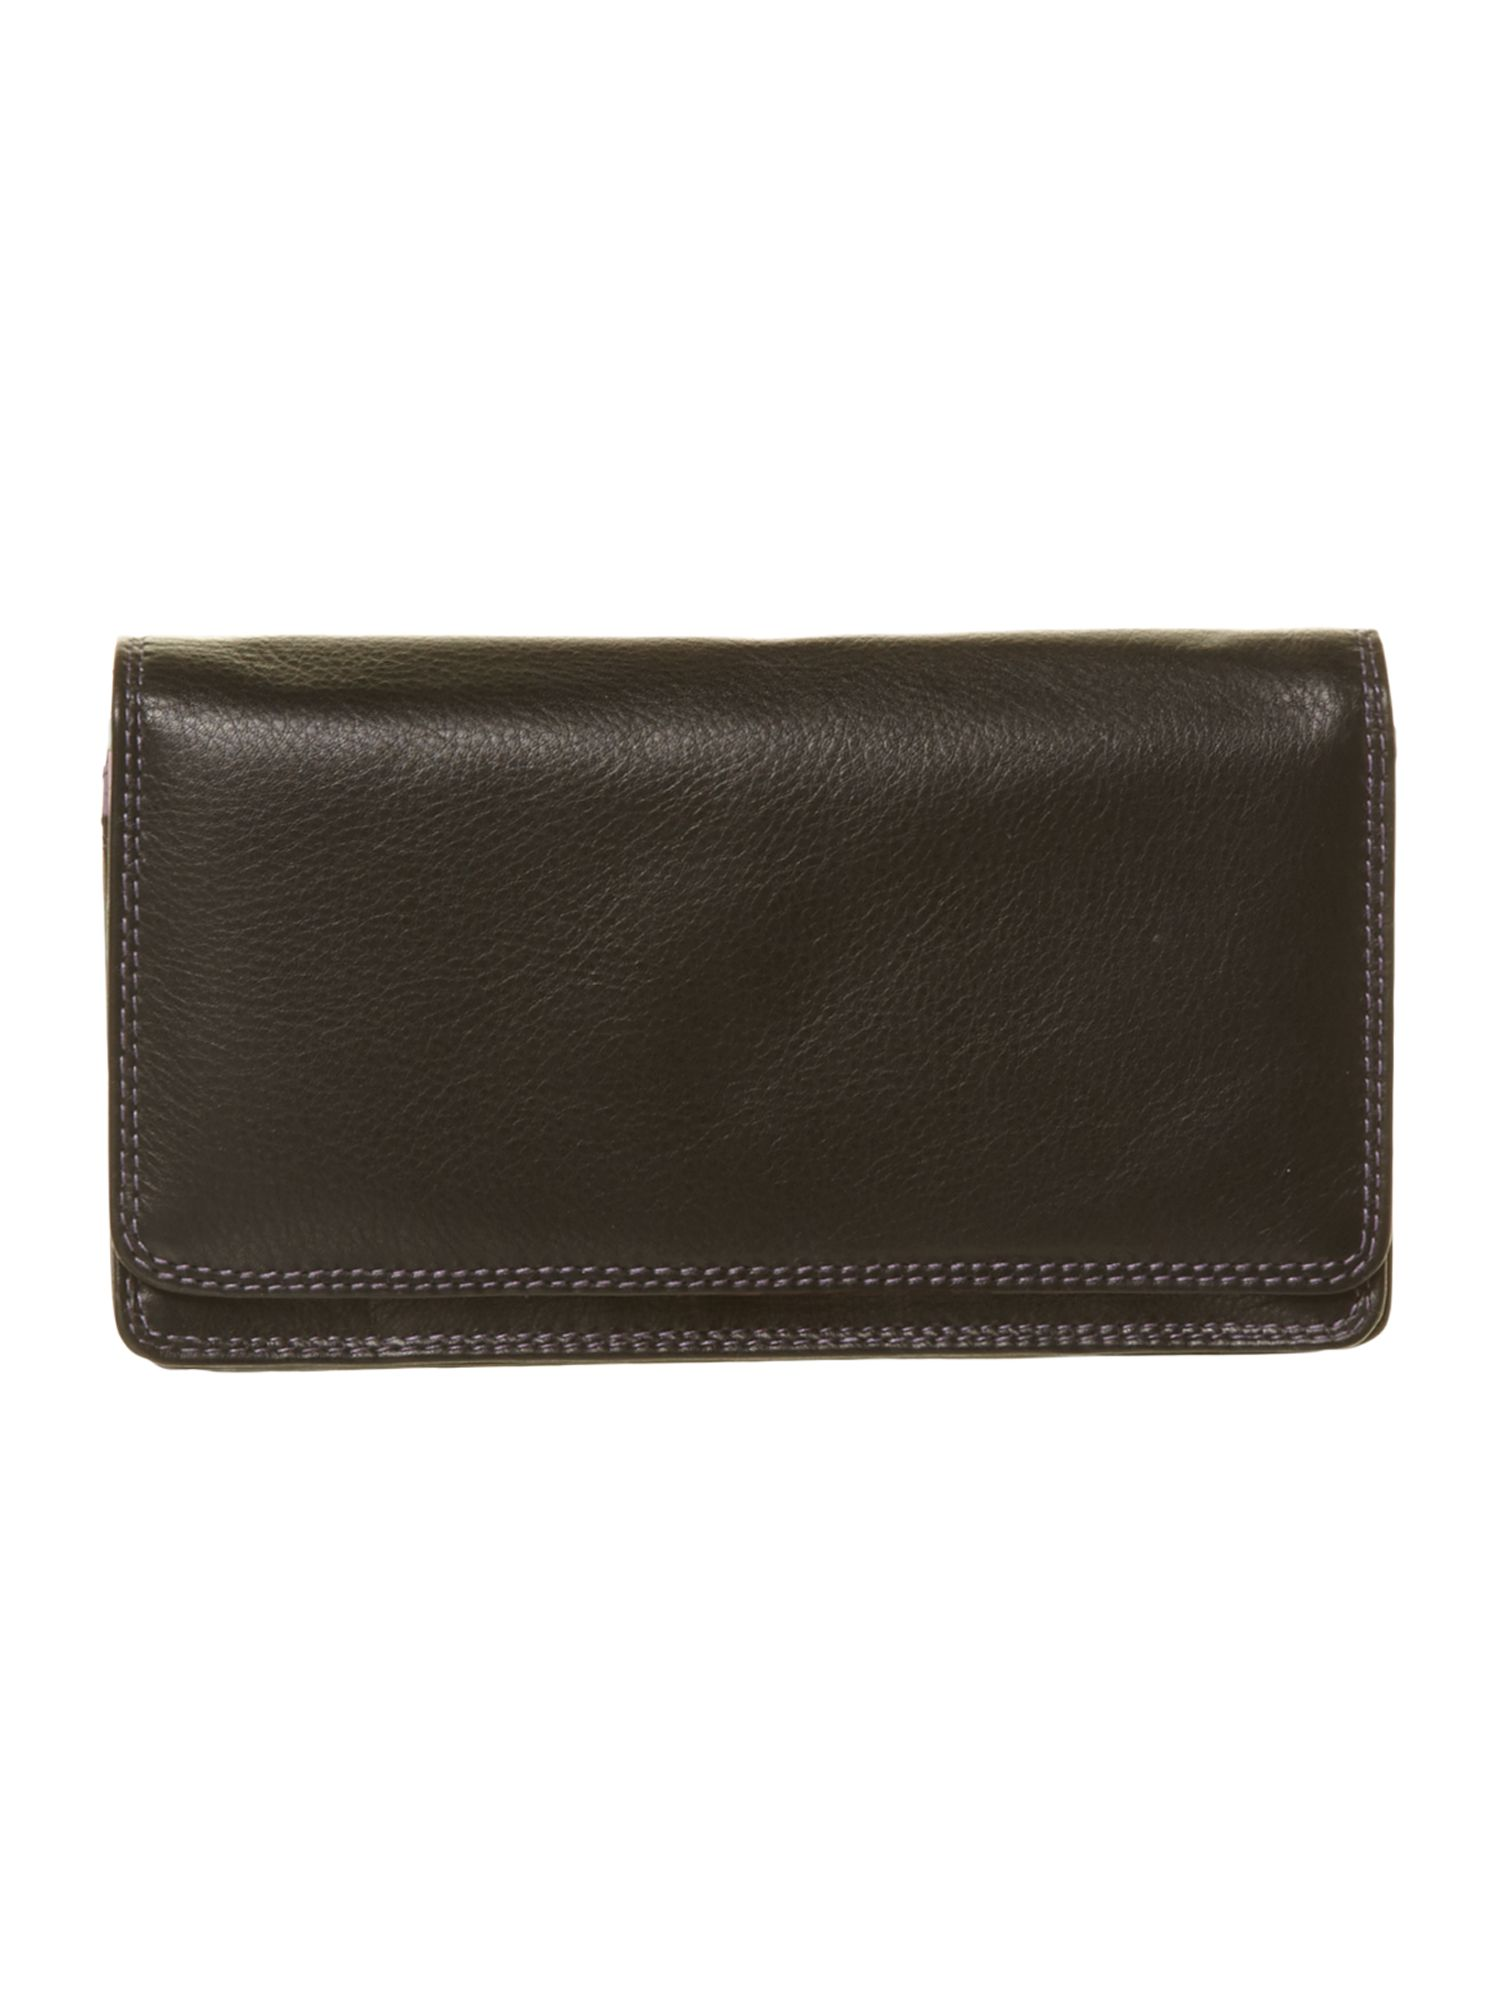 Block colour large black flapover purse